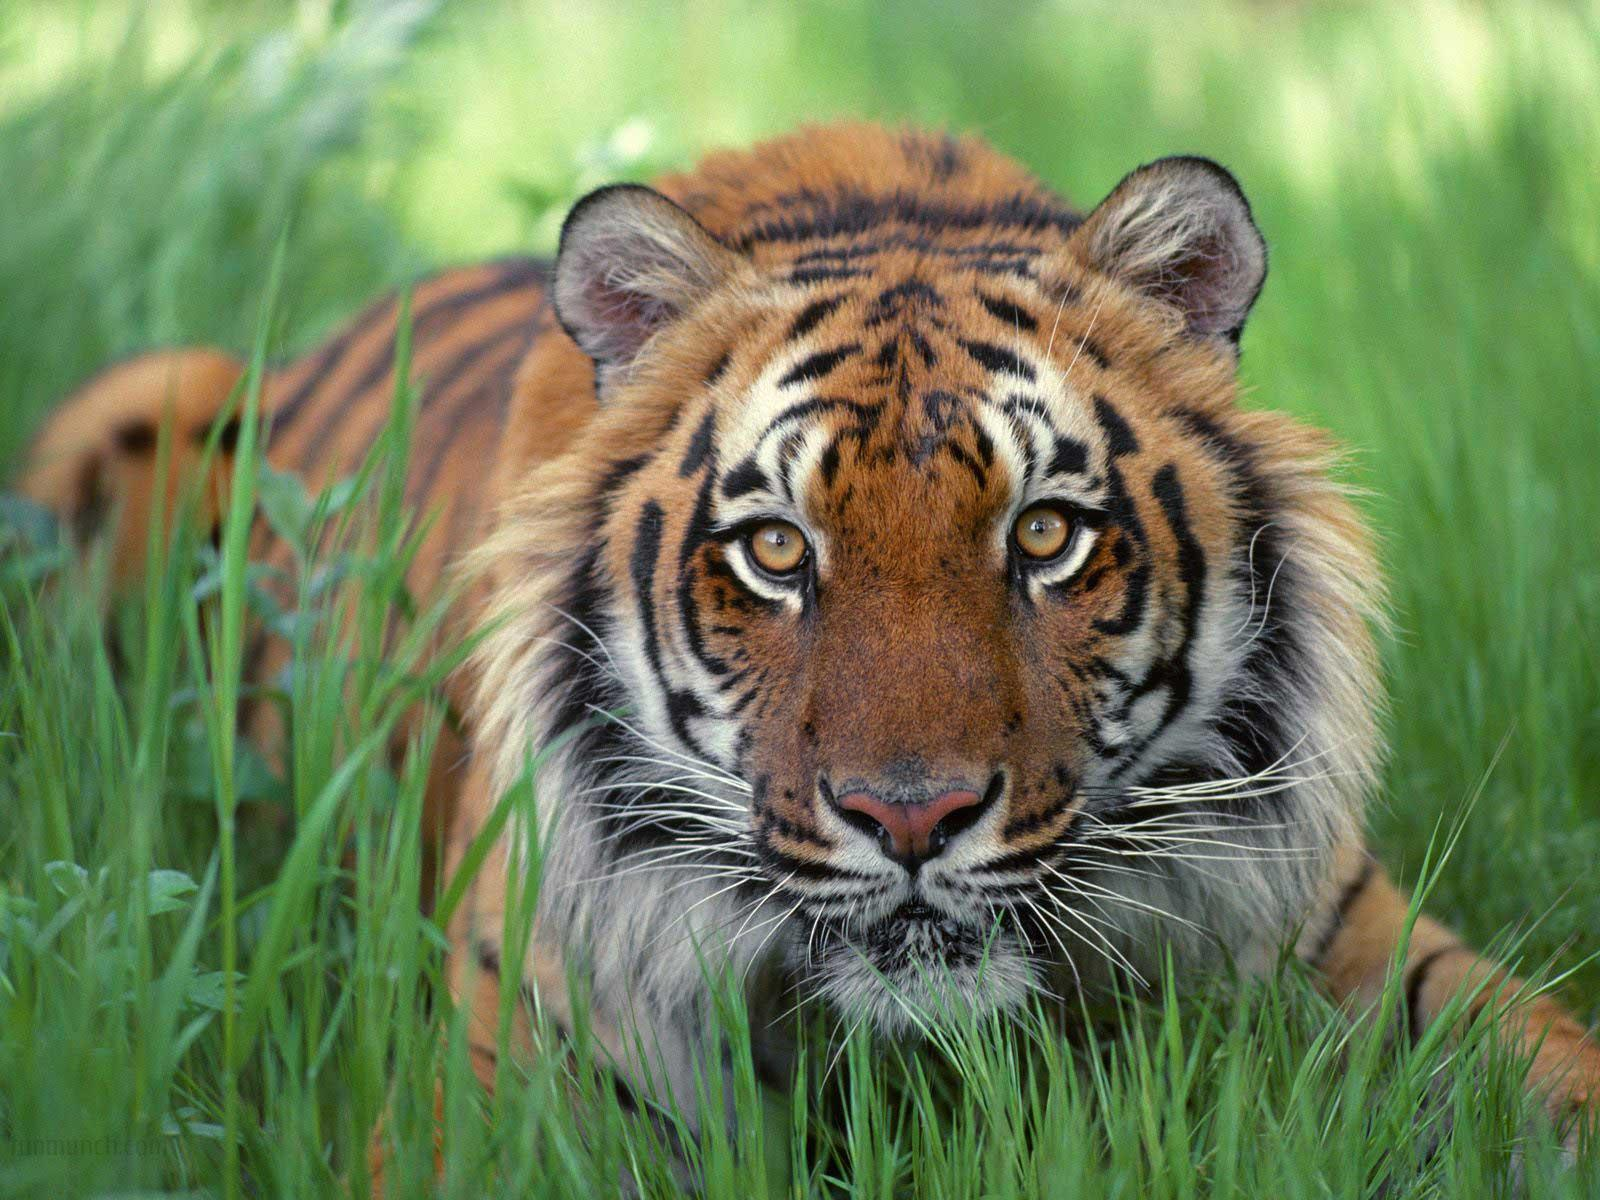 animals wild animal different wildlife wallpapers tiger tigers species creatures living those pic gone kind